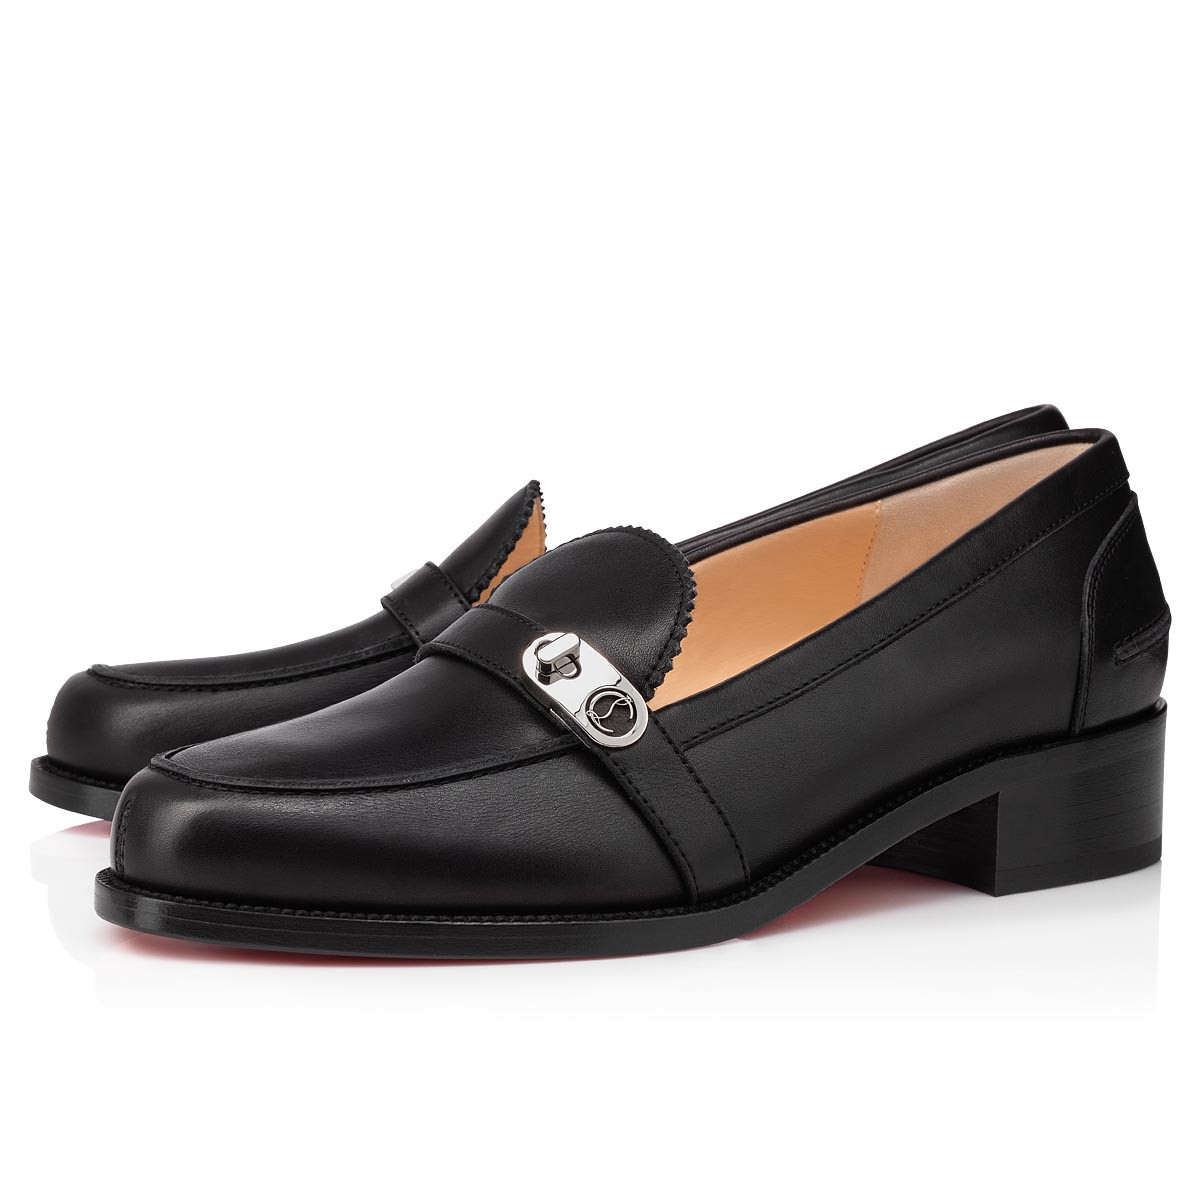 Shoes - Lock Me Moc - Christian Louboutin